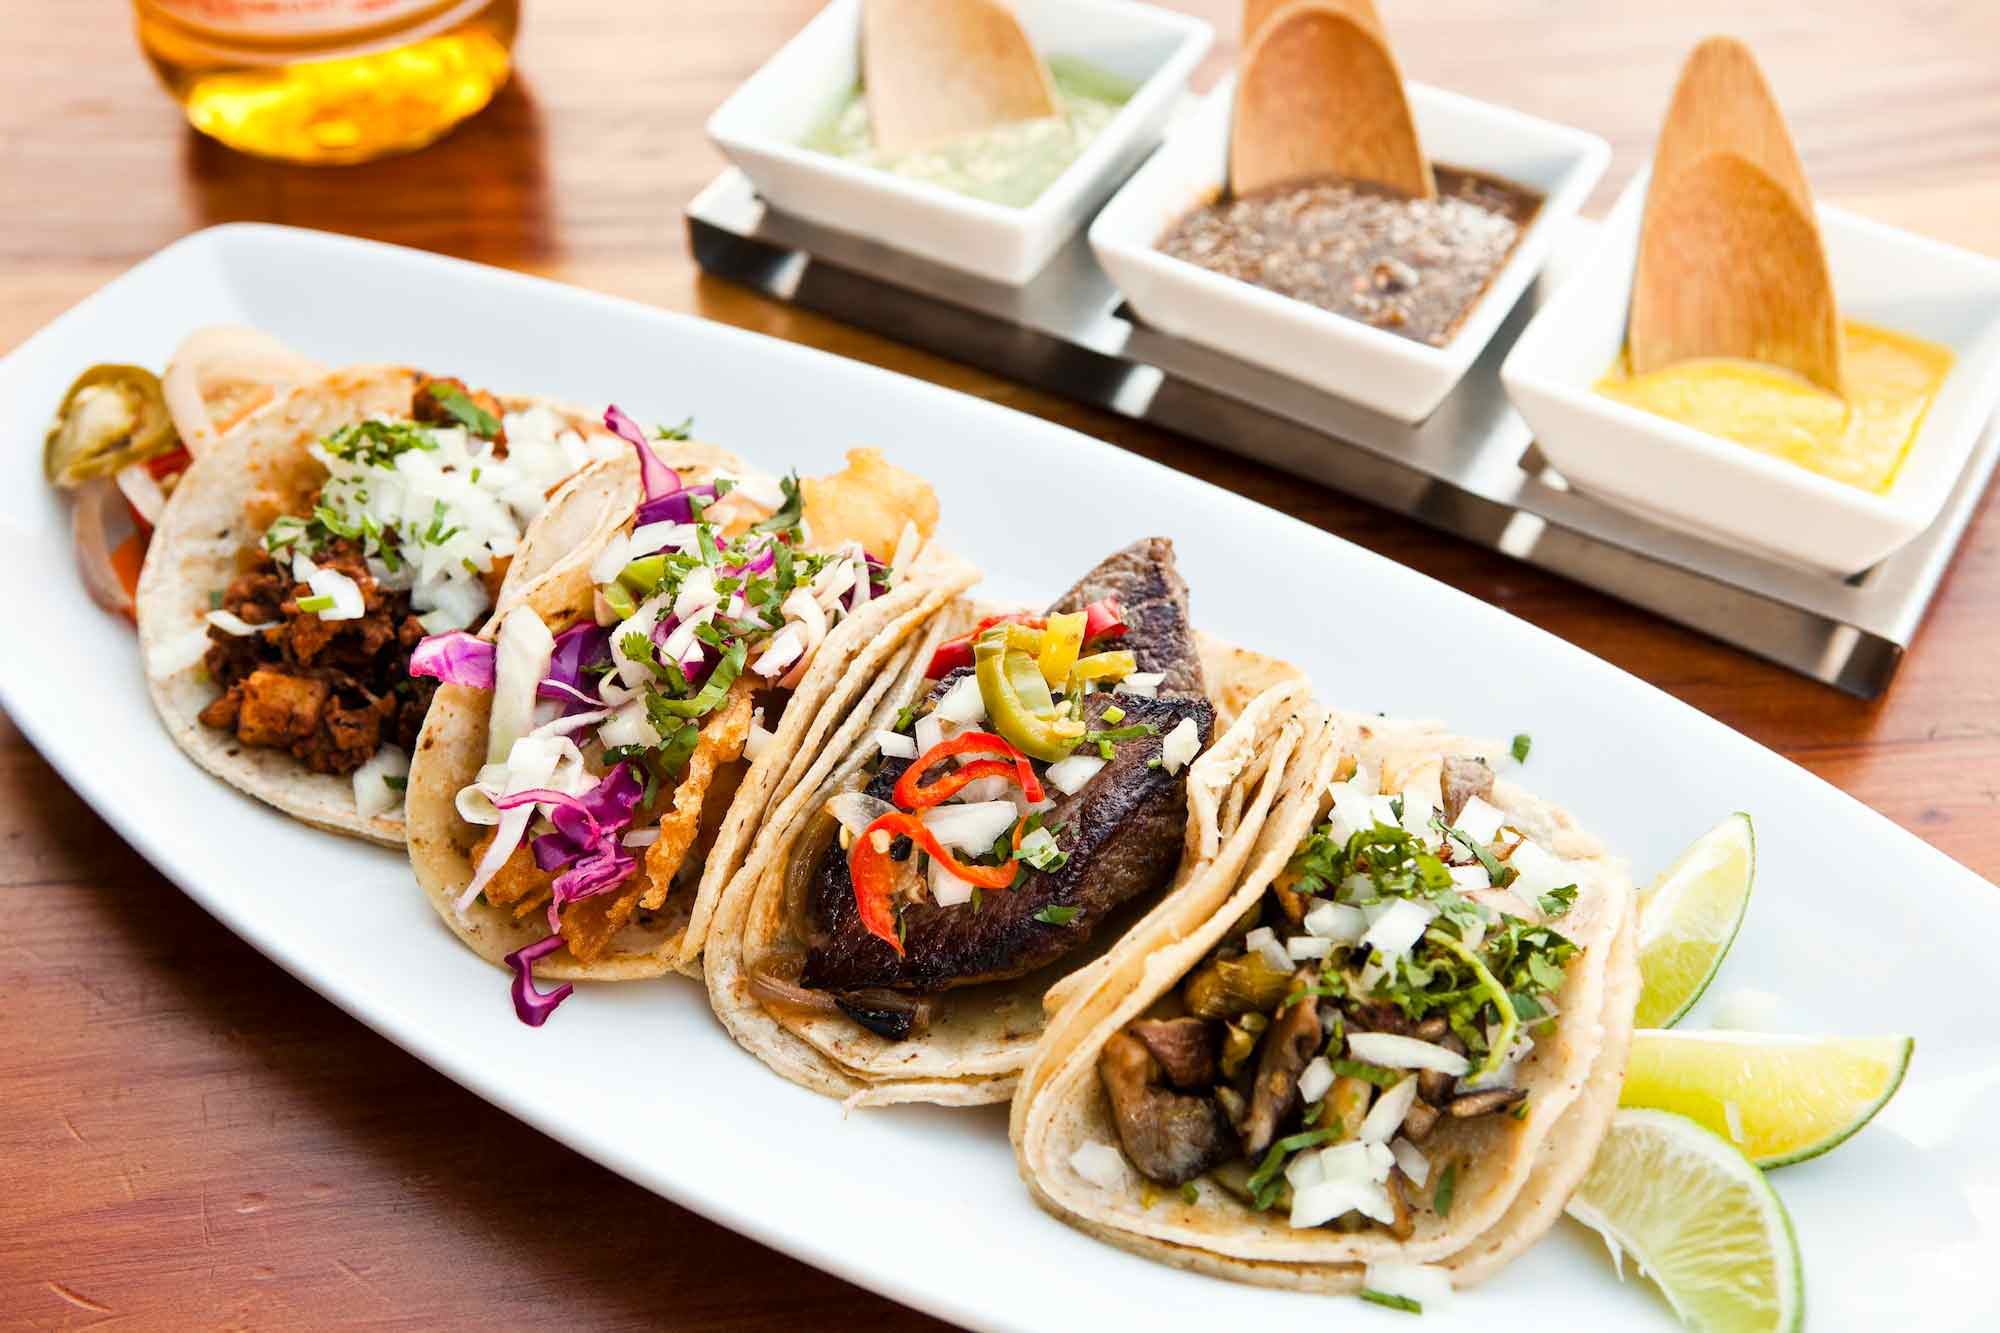 Plate of tacos from Tacolicious